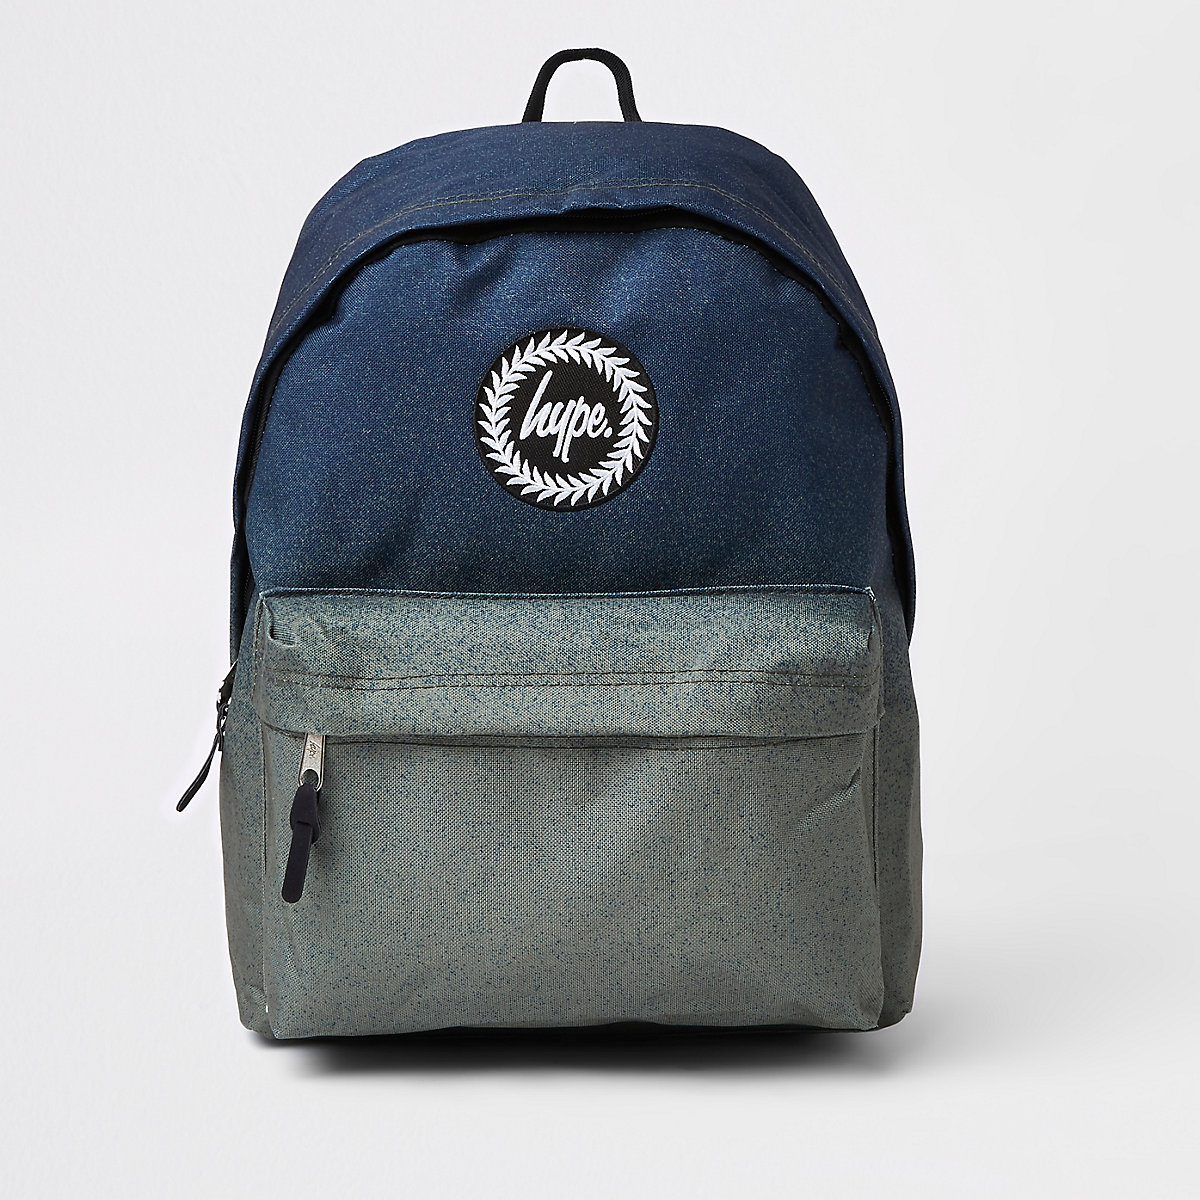 Hype khaki ombre backpack